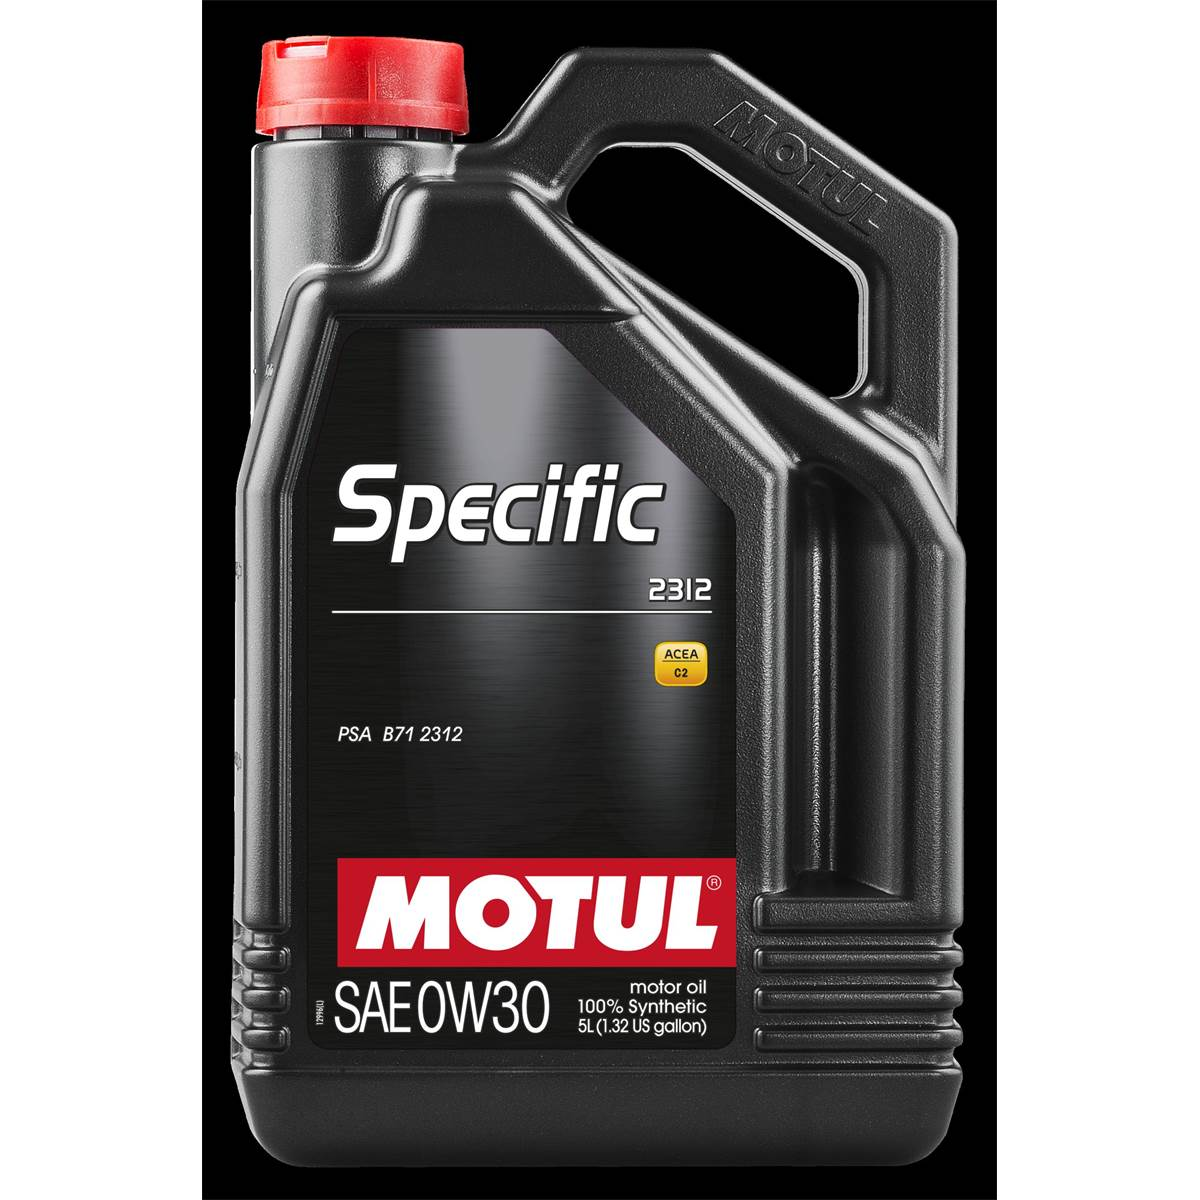 huile moteur motul specific 2312 essence diesel 0w30 5l. Black Bedroom Furniture Sets. Home Design Ideas